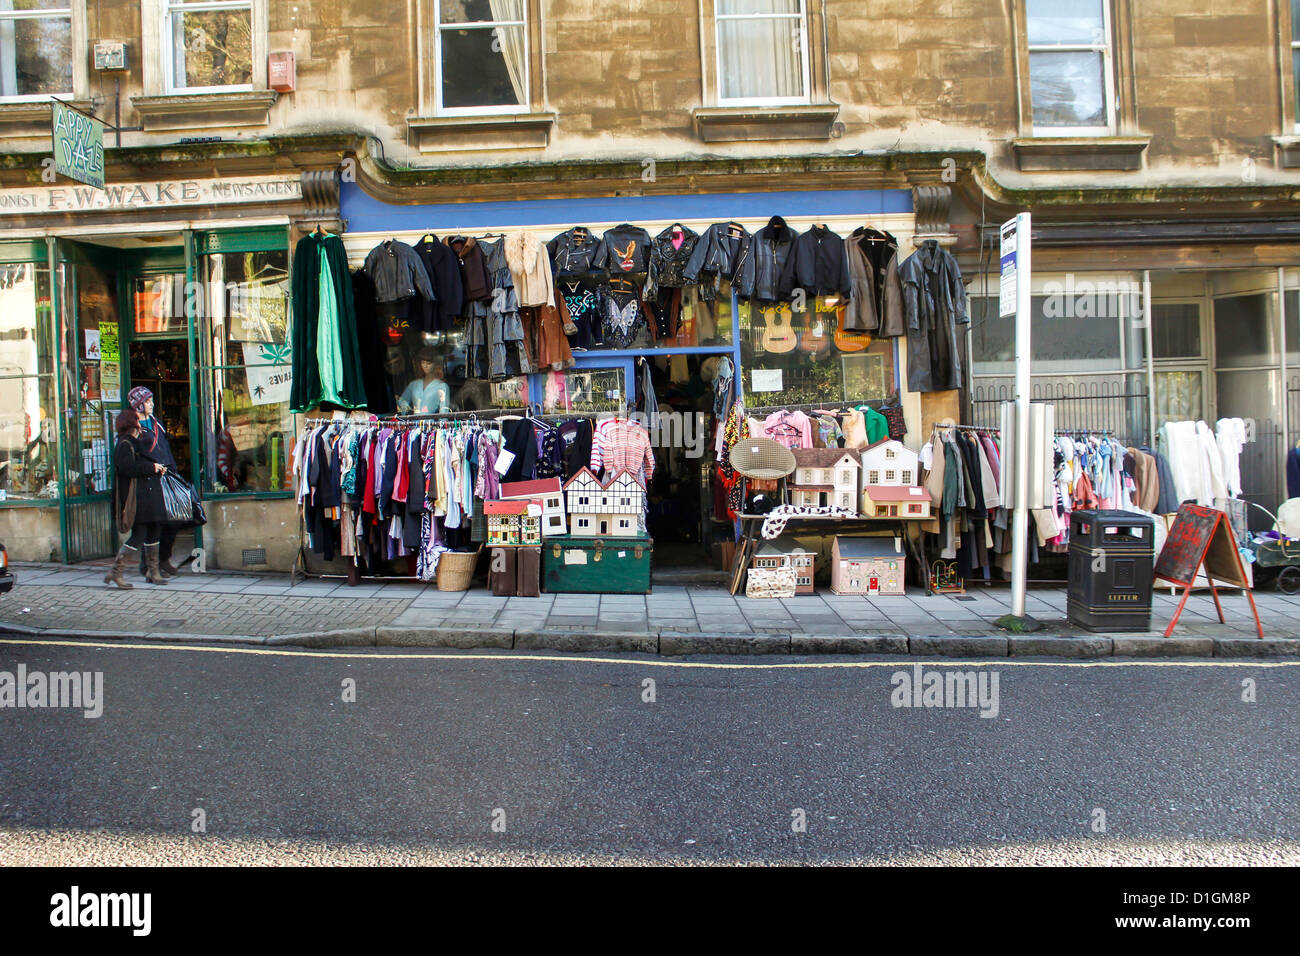 Secondhand clothes and toy shop in Bath, UK - Stock Image